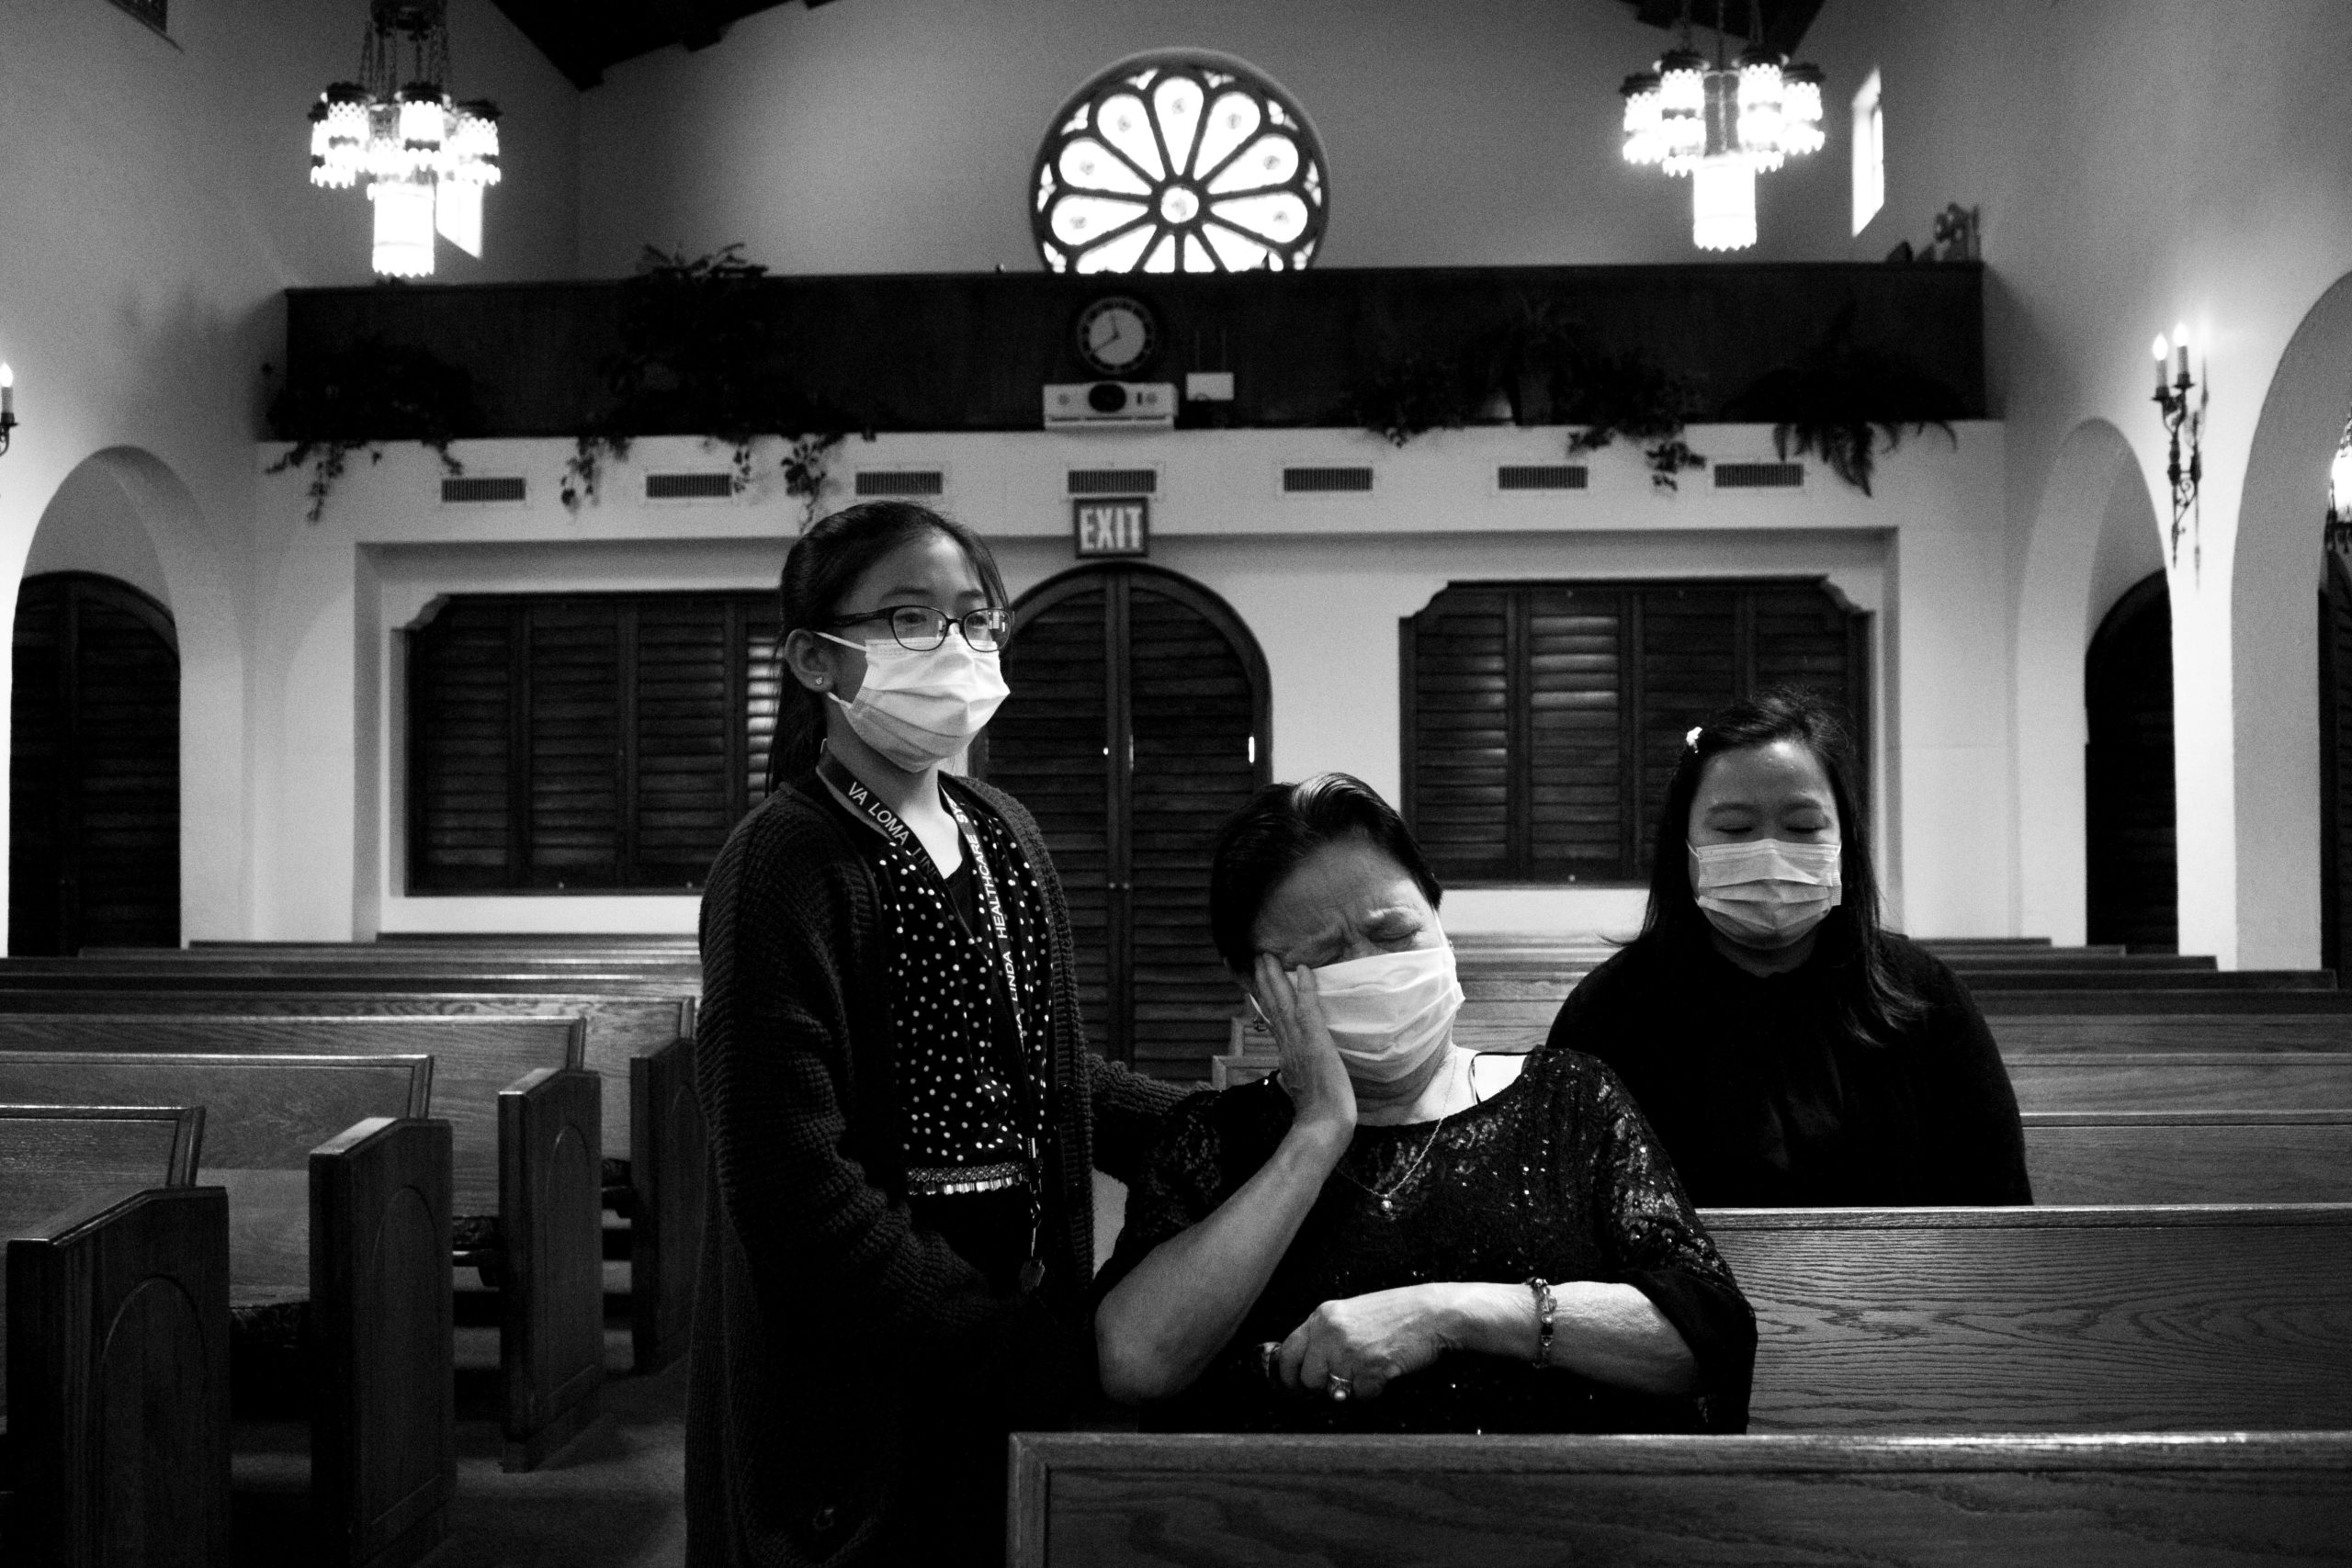 A woman cries while seated in a church, one hand pressing on her face. A young girl comforts her and another woman sits in the row behind them, looking down.